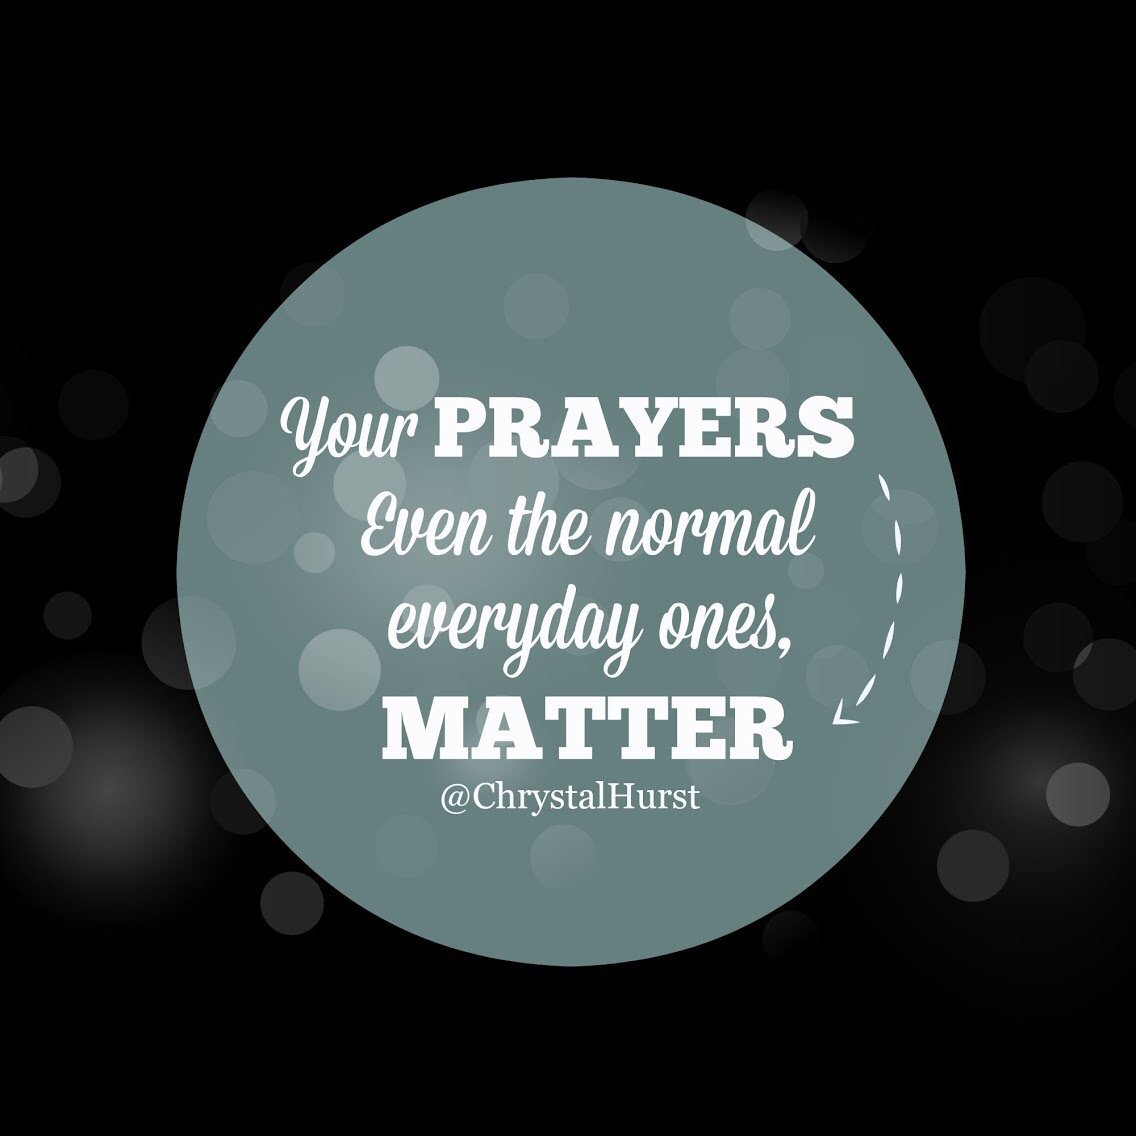 Faith friends do you pray for the normal chrystal evans hurst your prayers matter even the normal ones altavistaventures Image collections